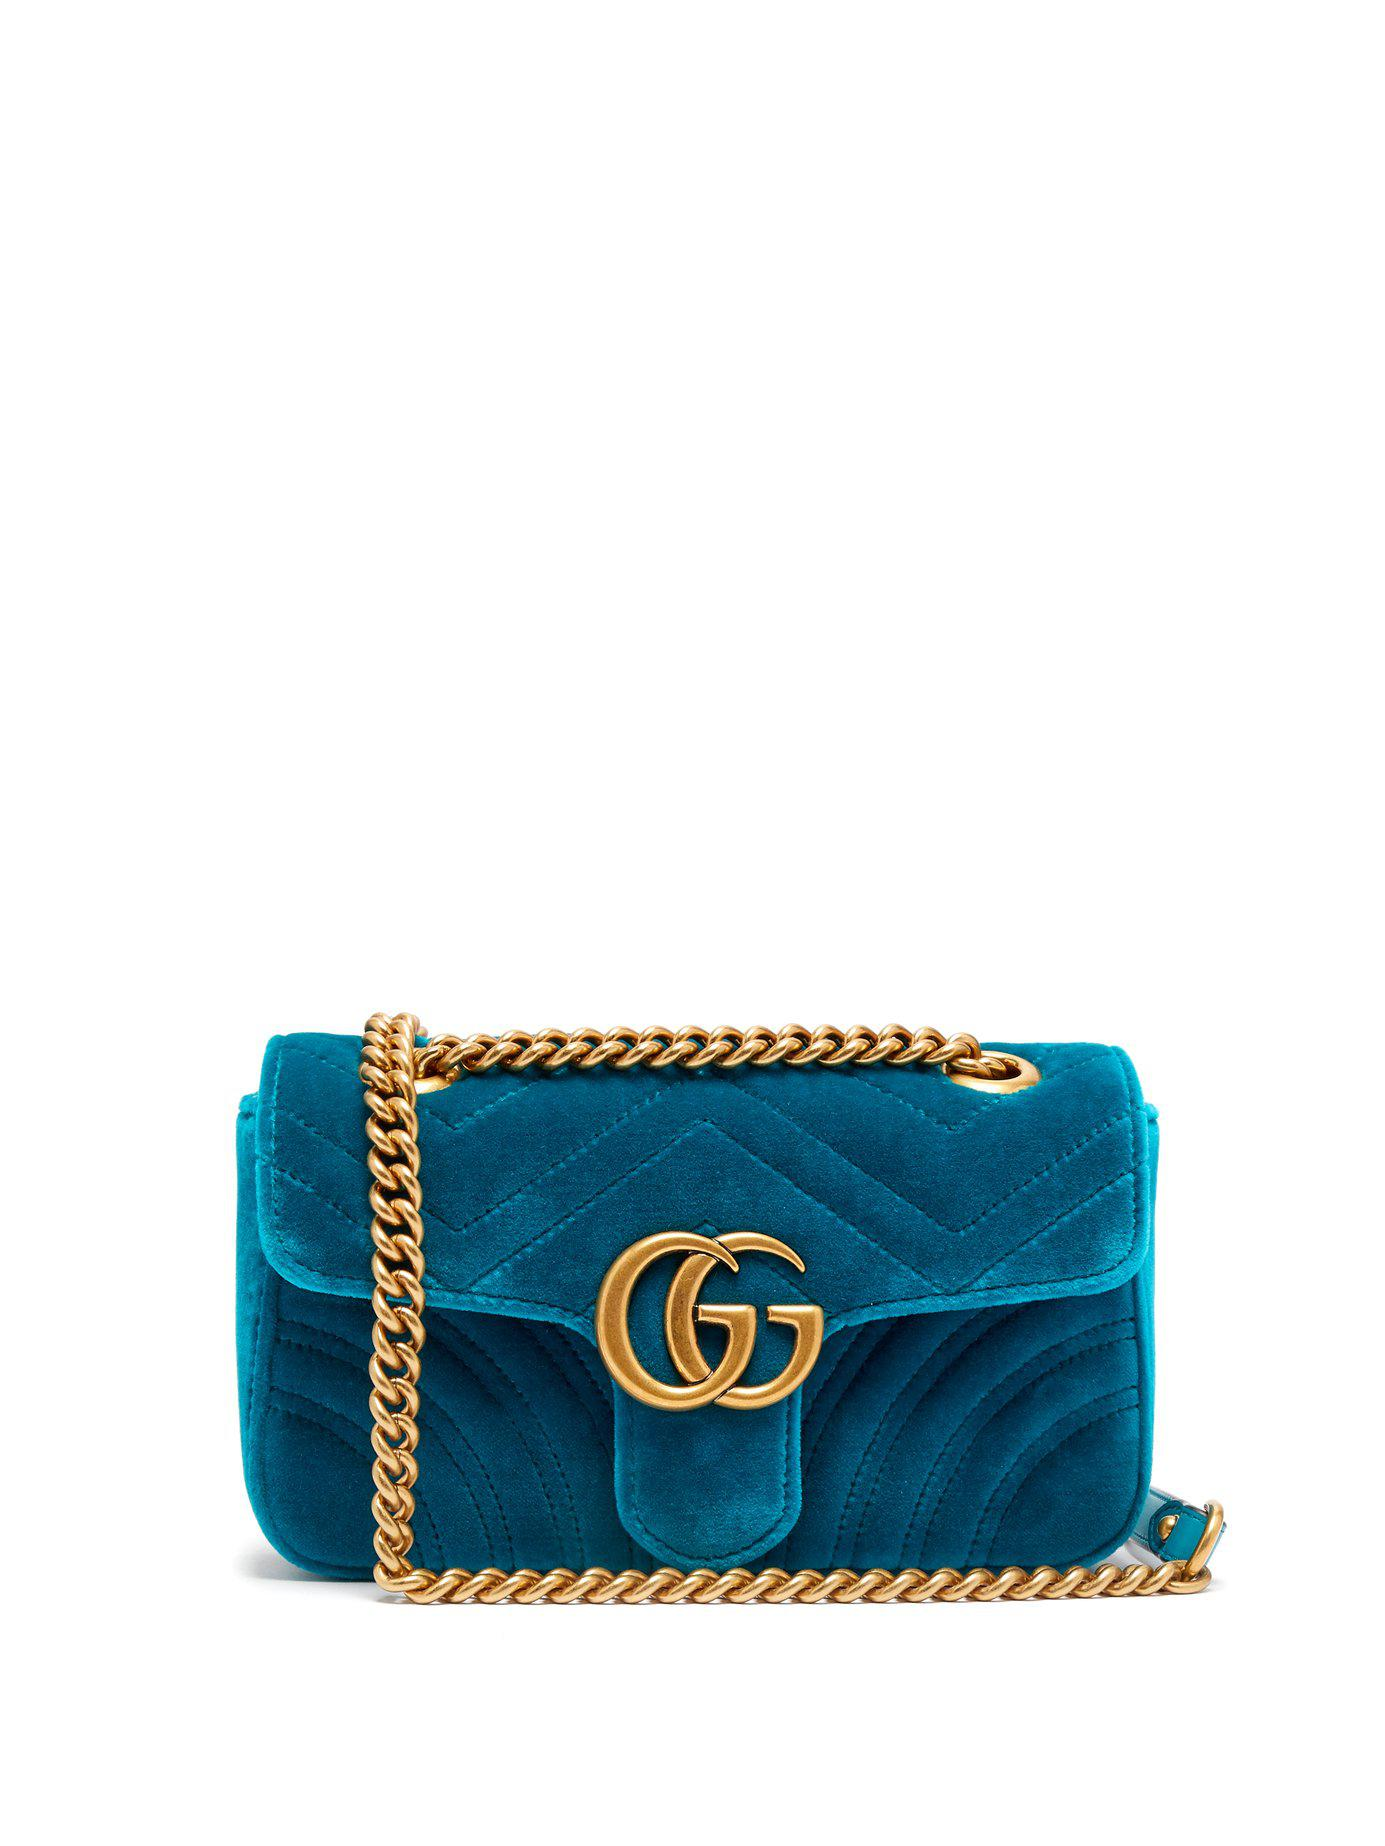 b0ca56089b4 Lyst - Gucci Gg Marmont Mini Quilted Velvet Cross Body Bag in Green